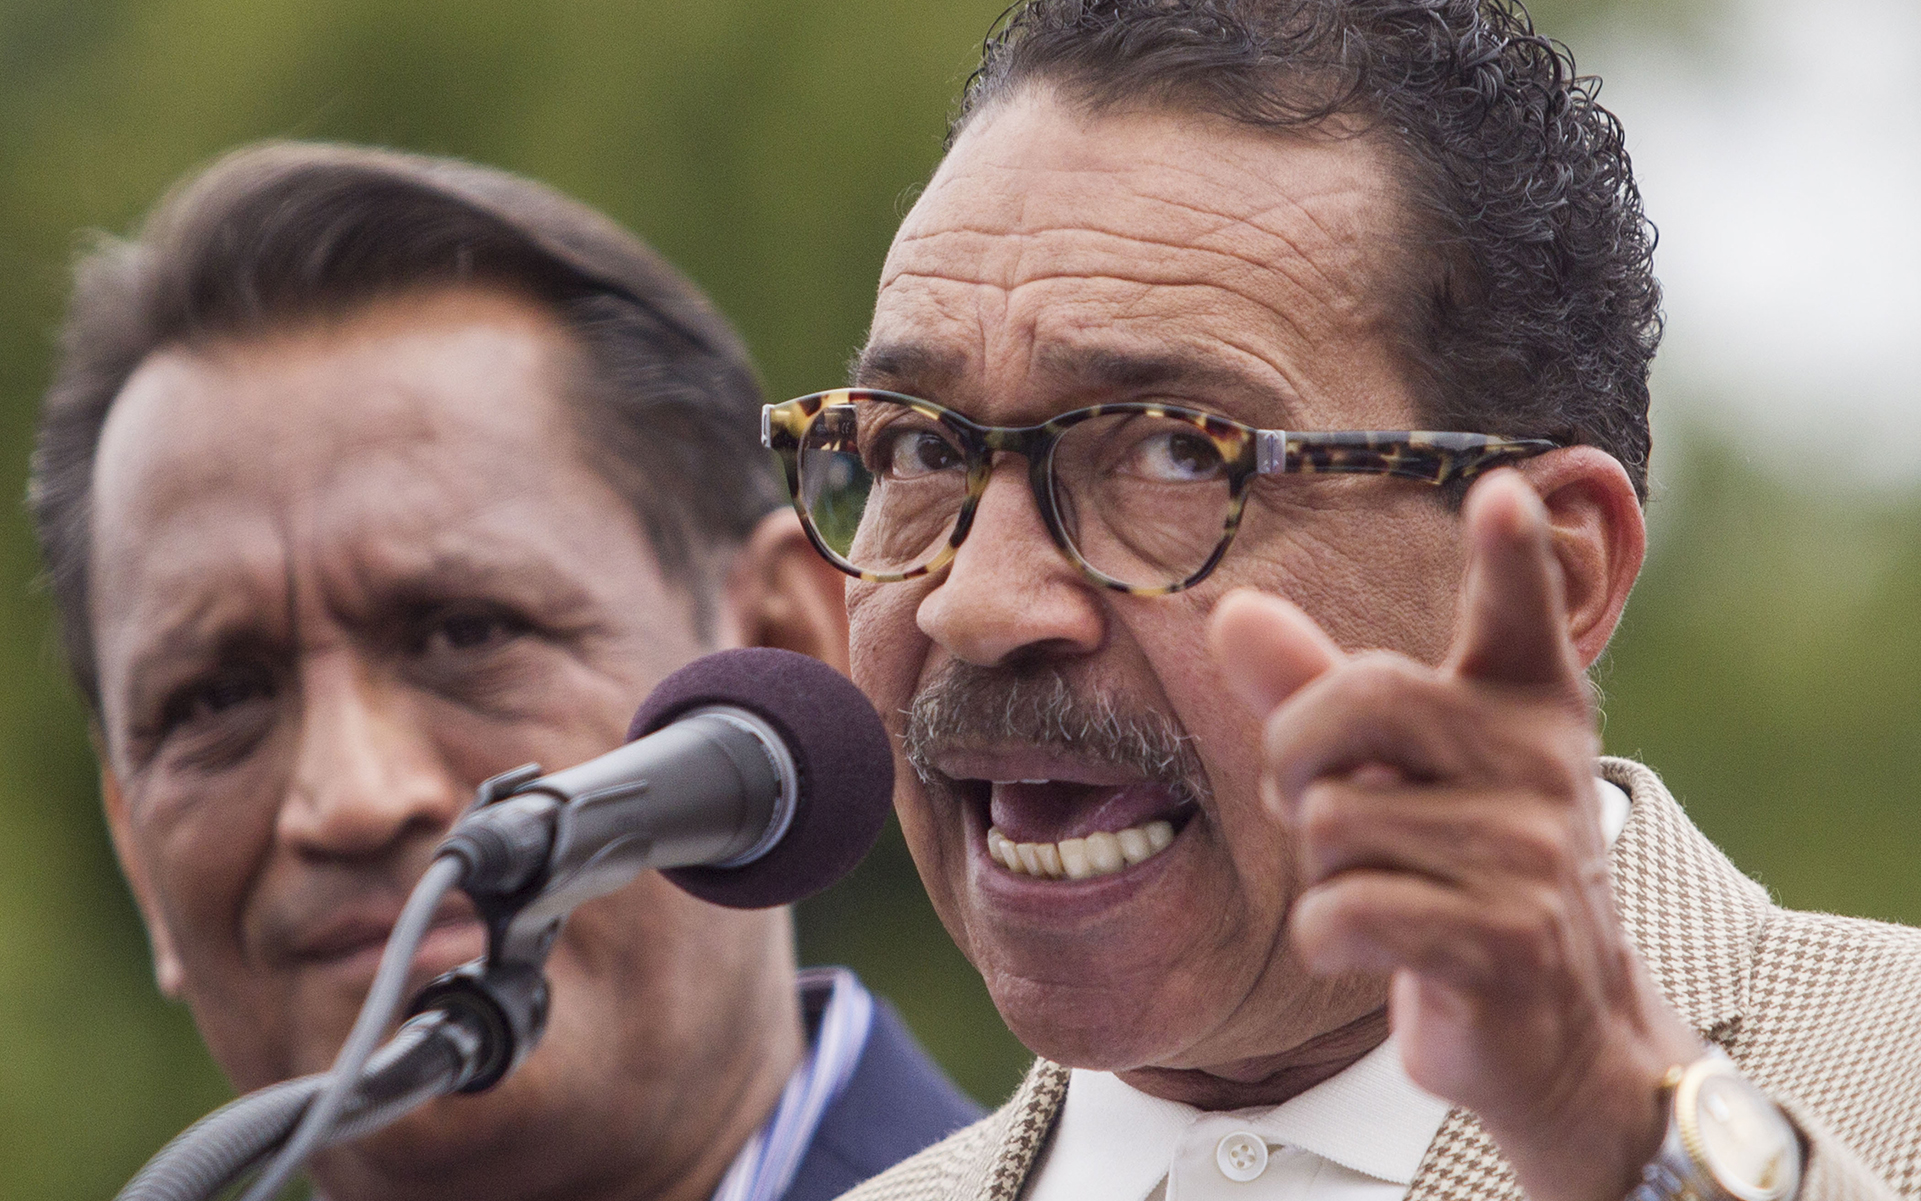 Los Angeles City Council president Herb Wesson has called for suspending and re-doing cannabis store licensing. (AP File Photo/Ringo H.W. Chiu)